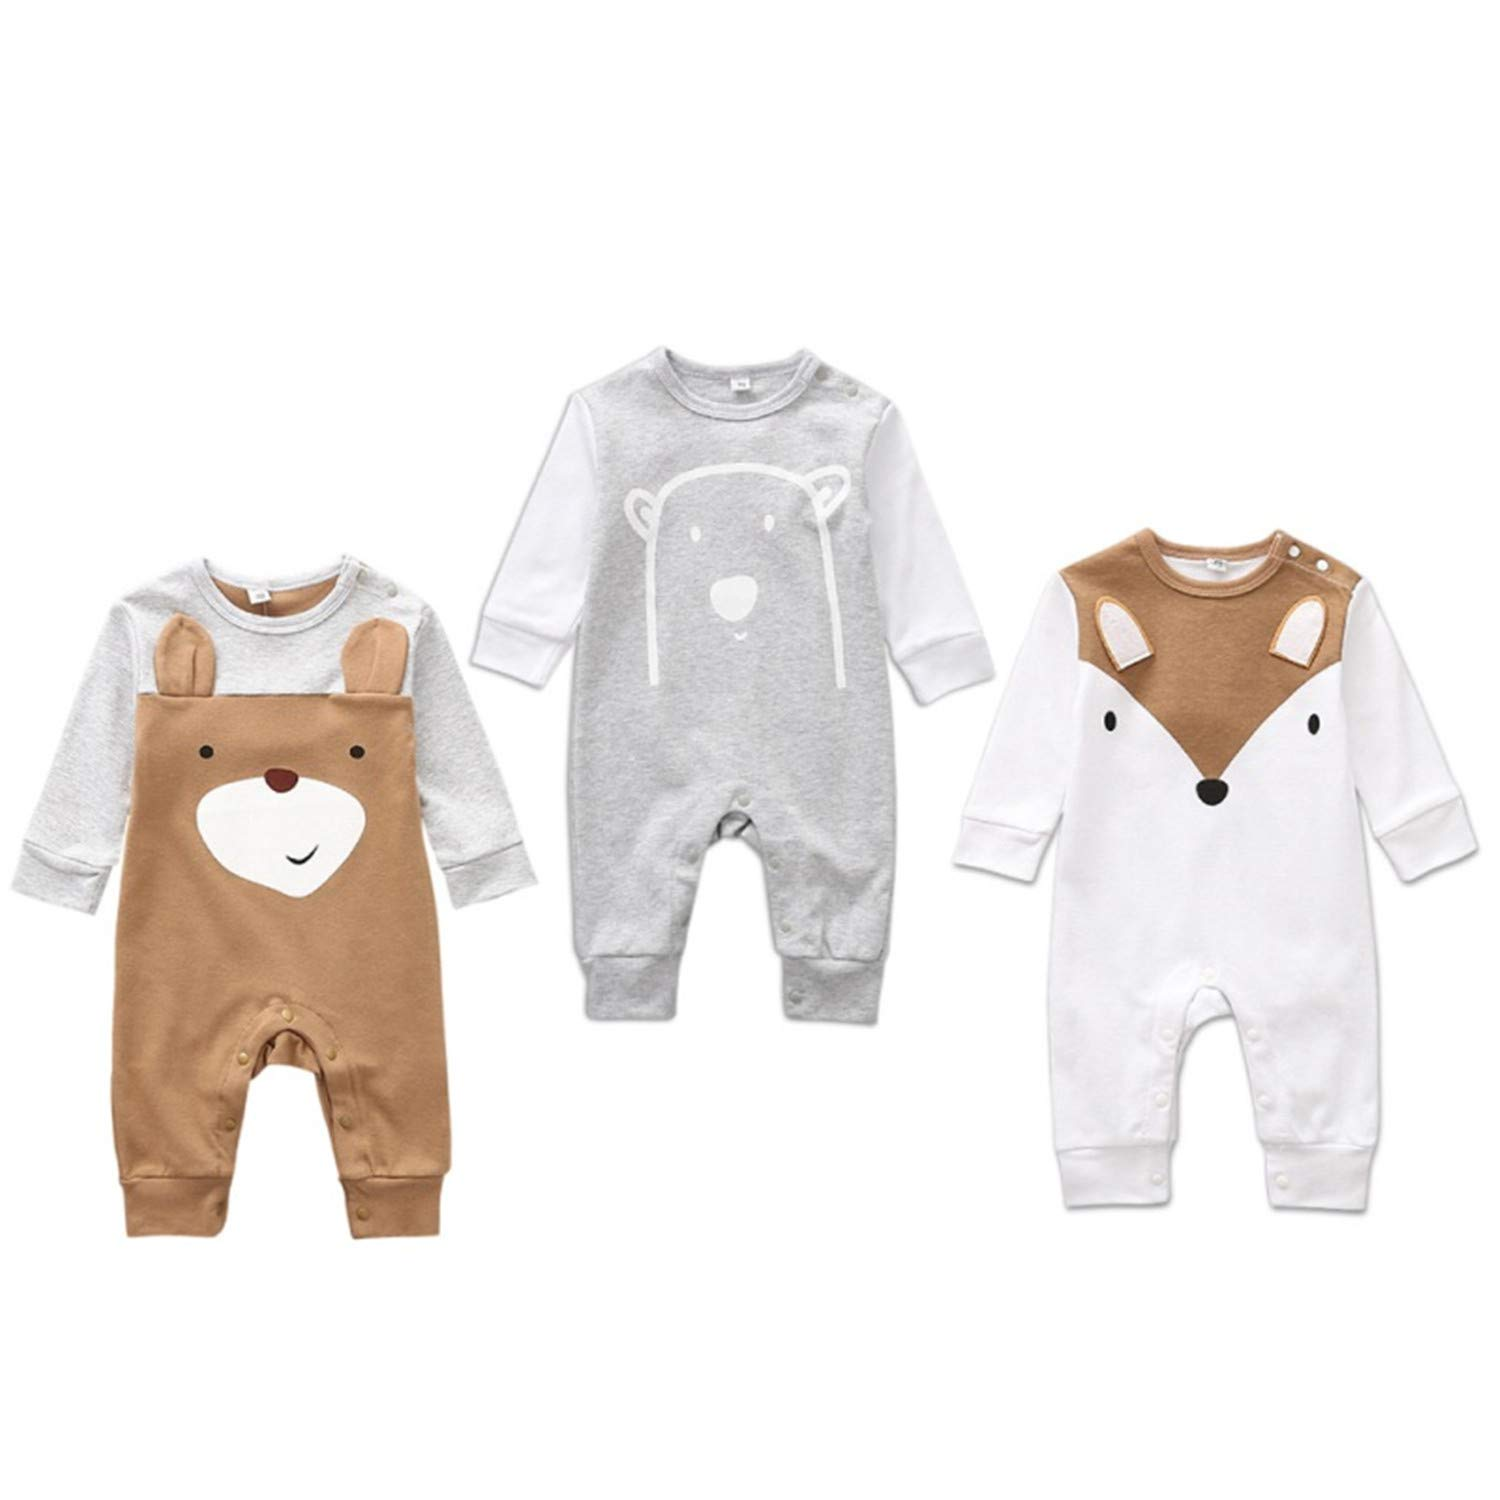 Newborn Baby Boys Romper Girls Playsuits Cotton Long Sleeve Animal Baby Clothes 0-12M